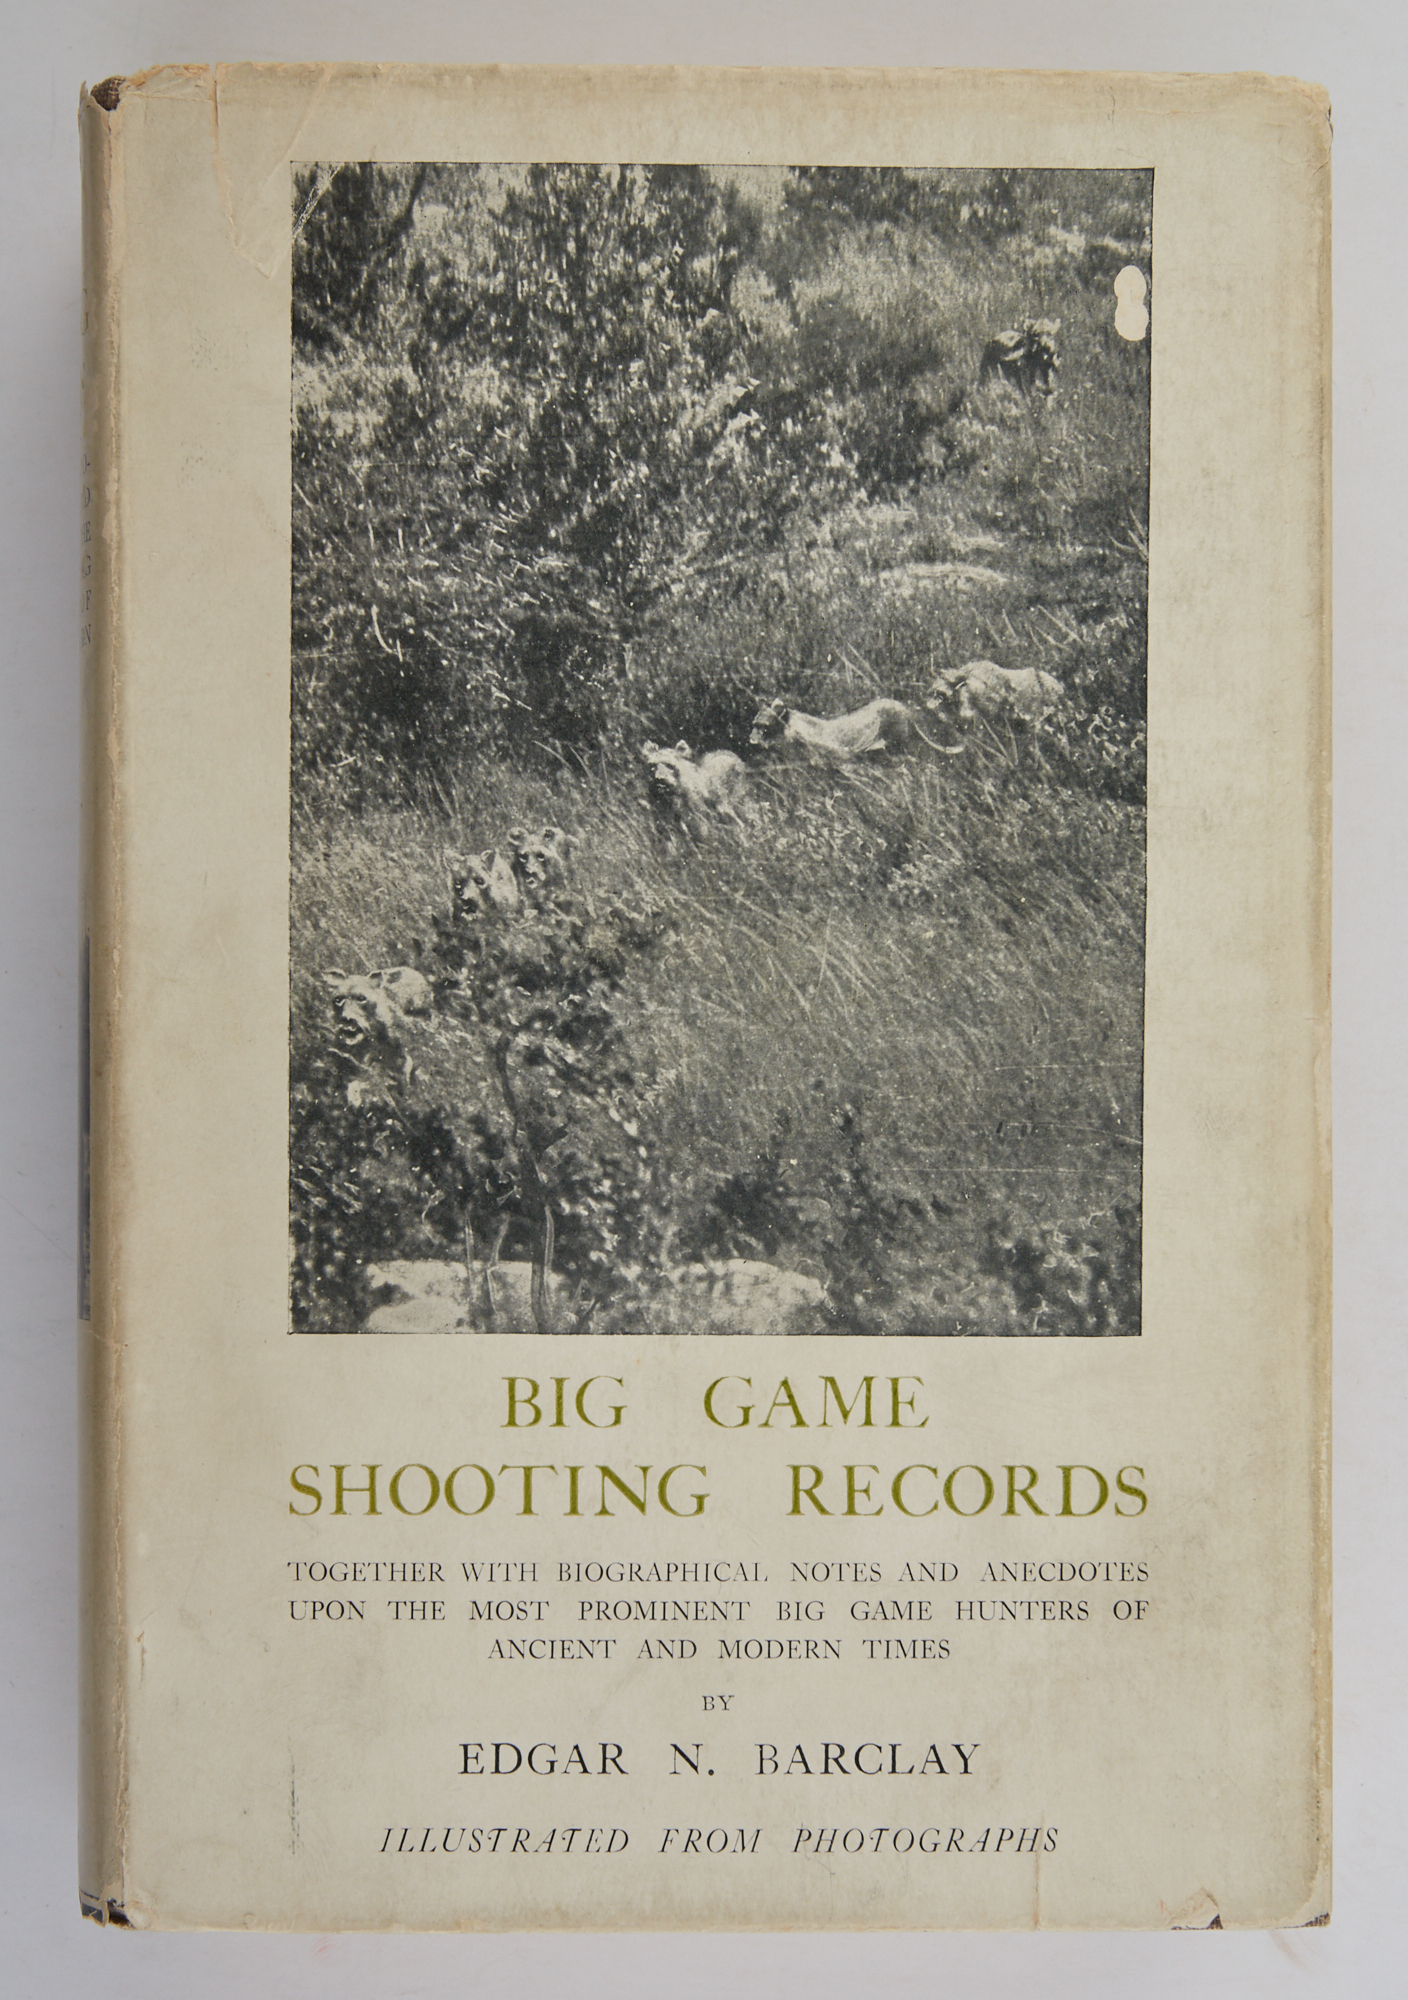 Lot image - BARCLAY, EDGAR N.  Big Game Shooting Records. Together with biographical notes and anecdotes on the most prominent big game hunters of ancient and modern times.